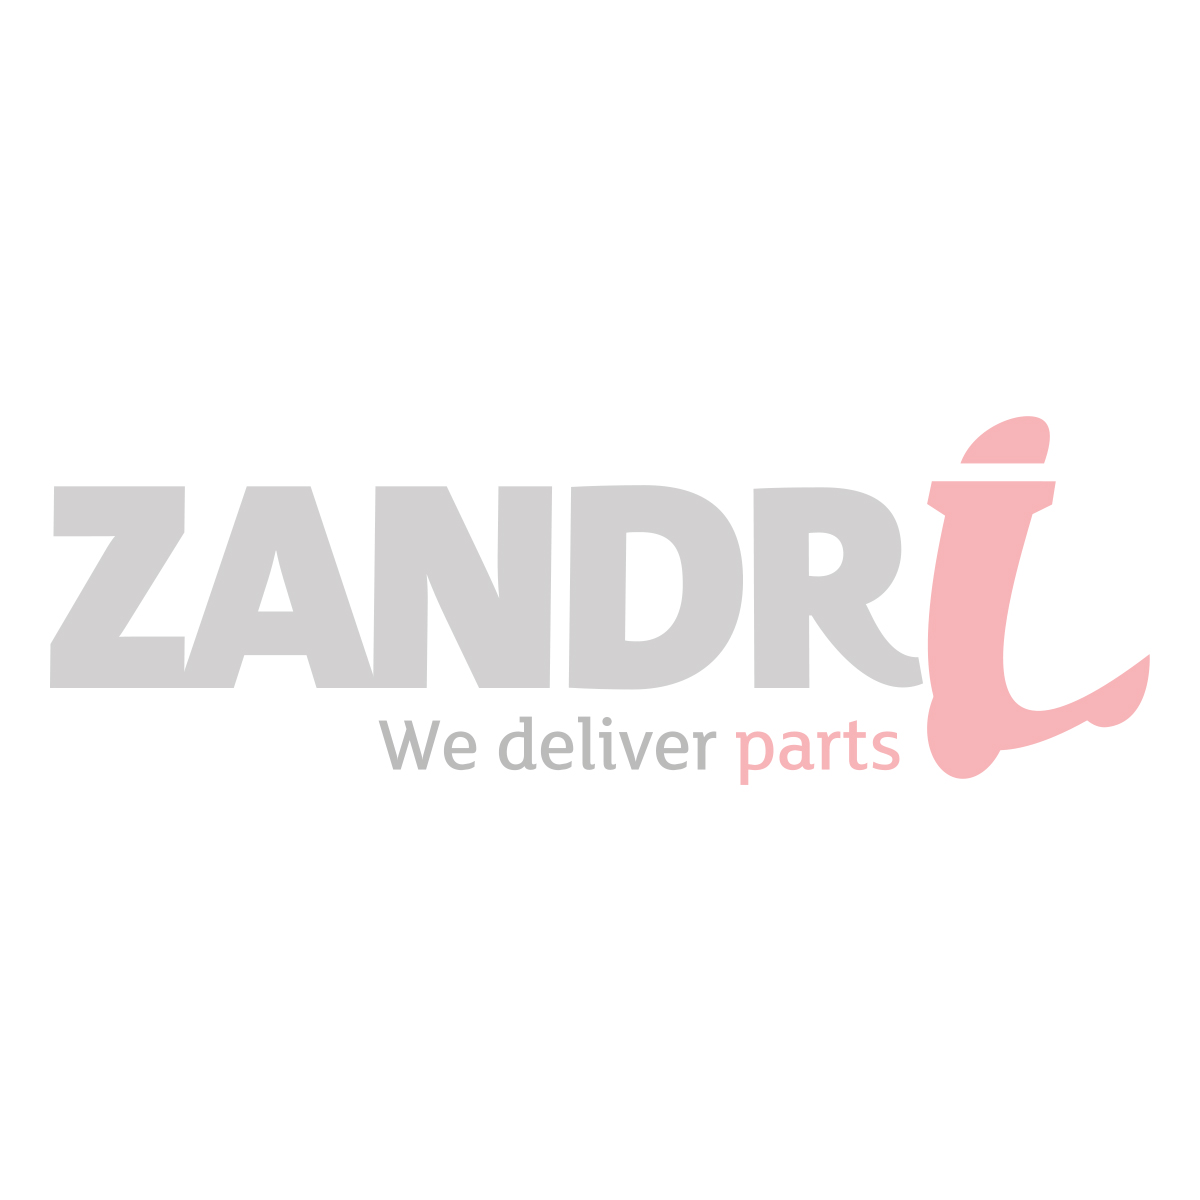 eindoverbrenging-carter Kymco Agility RS 4-takt wit 11